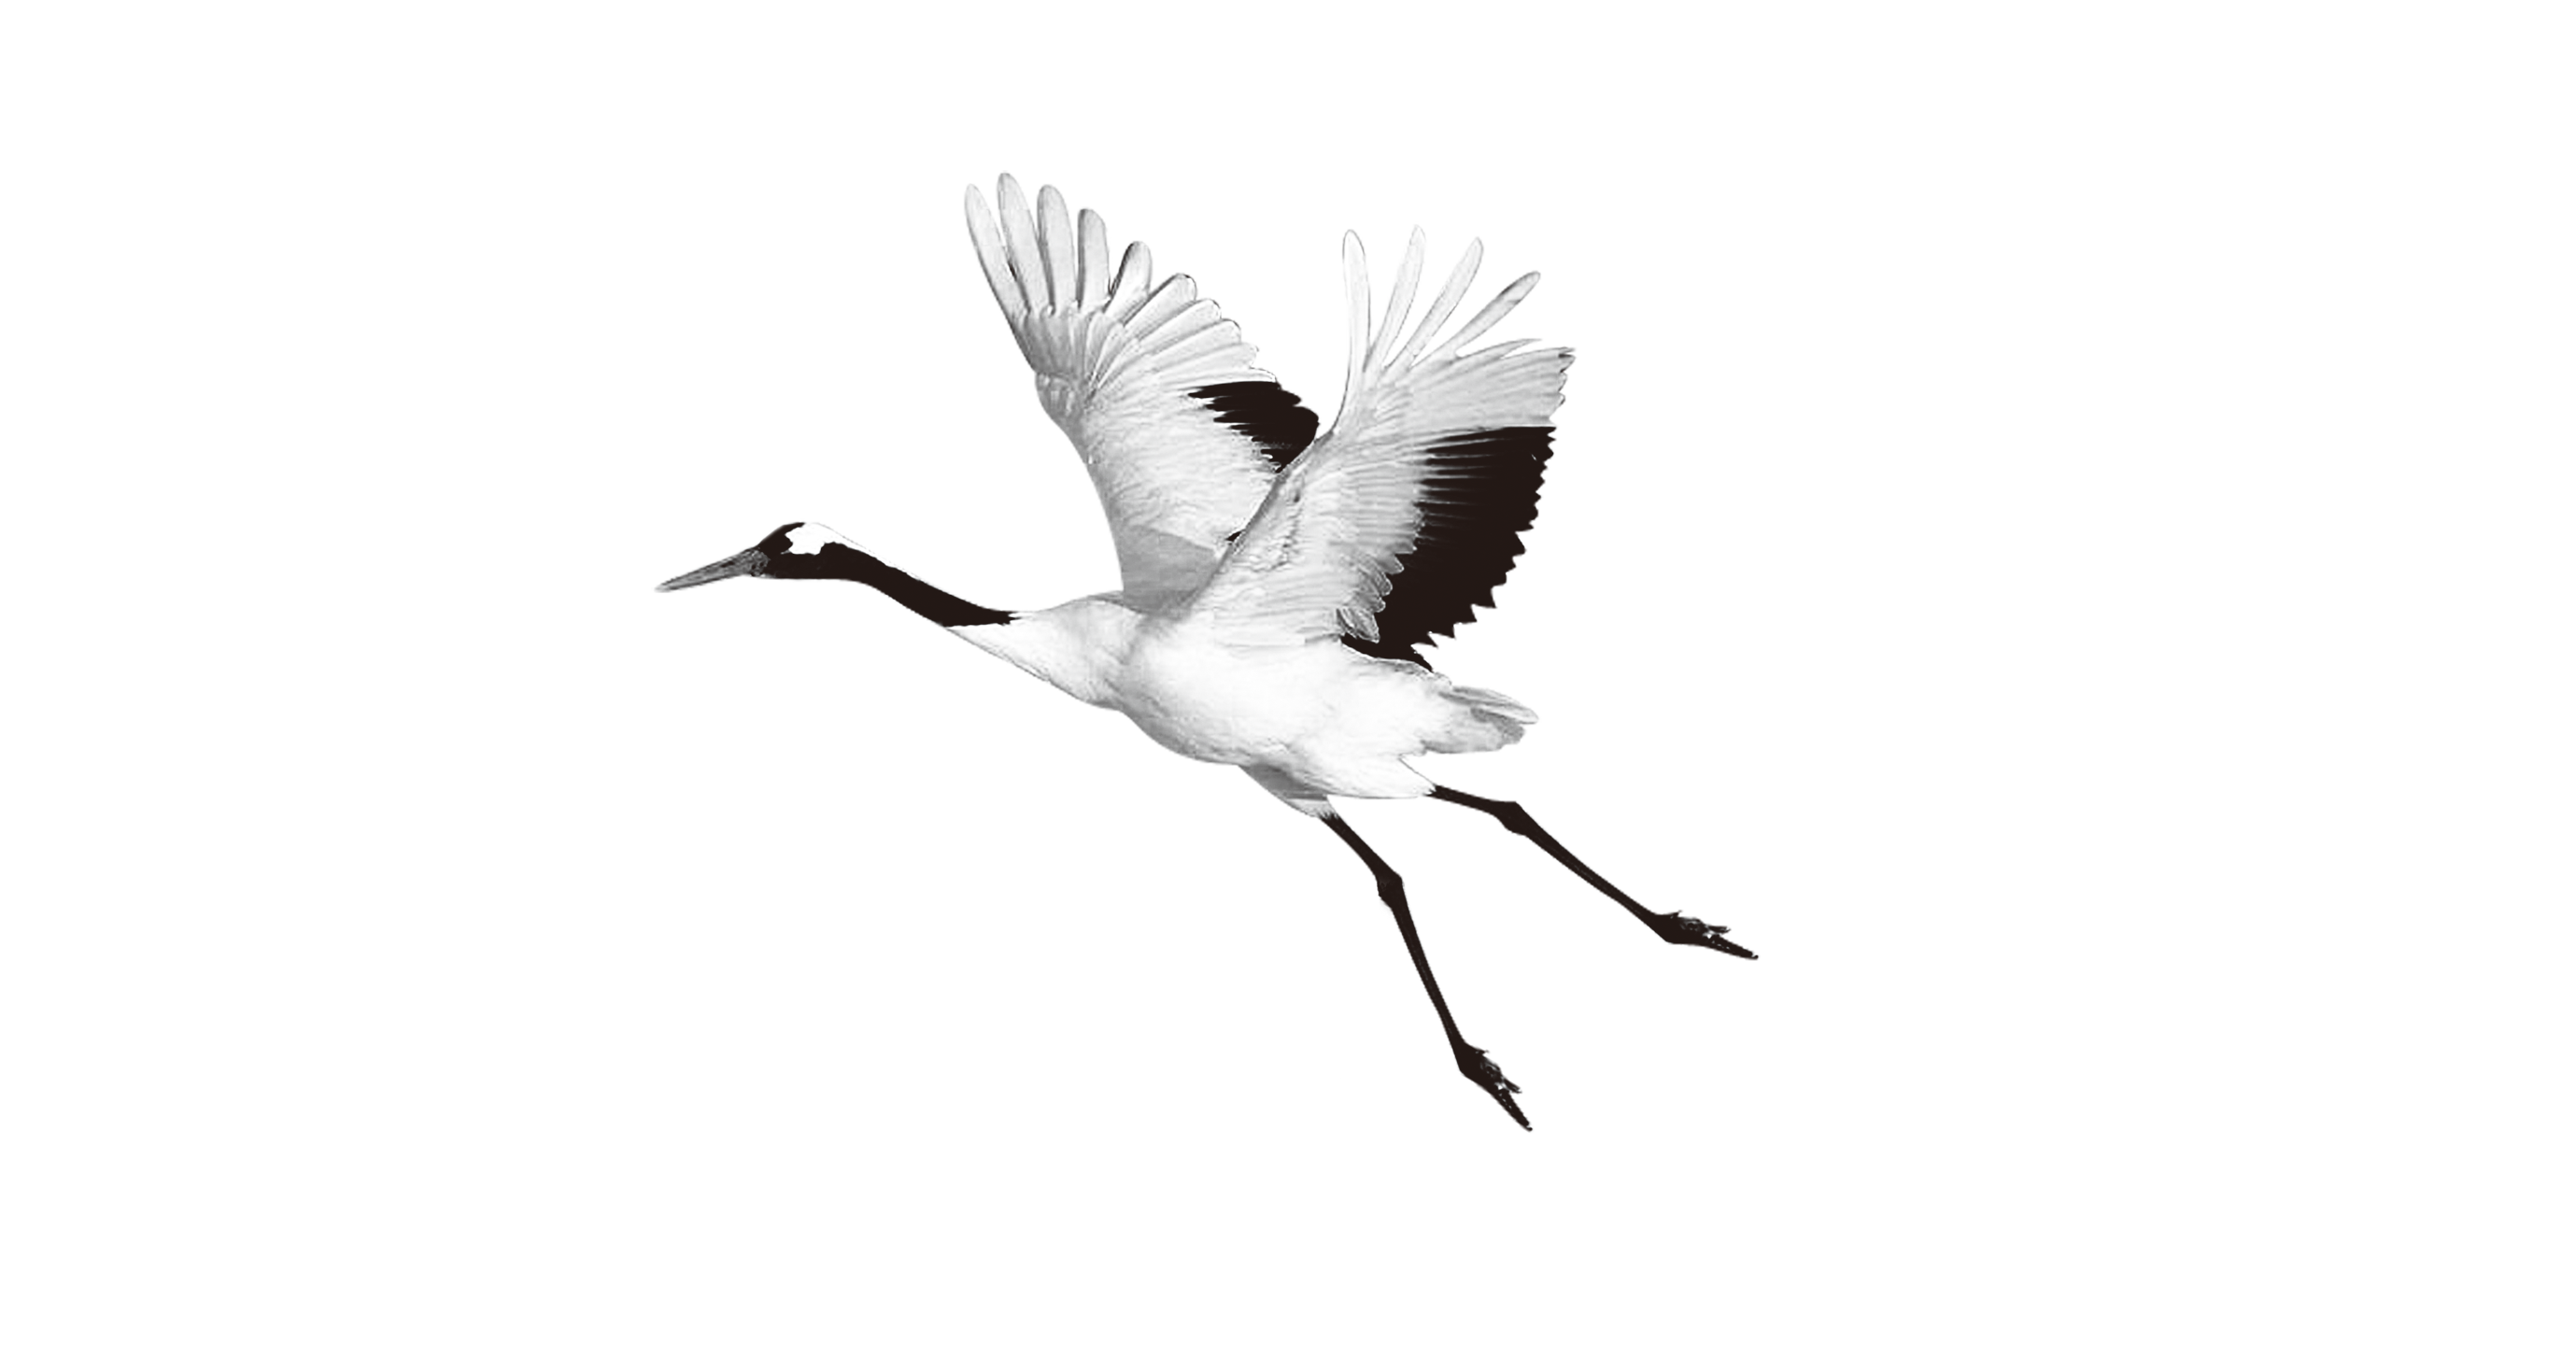 Crane clipart animal. Zhalong nature reserve red